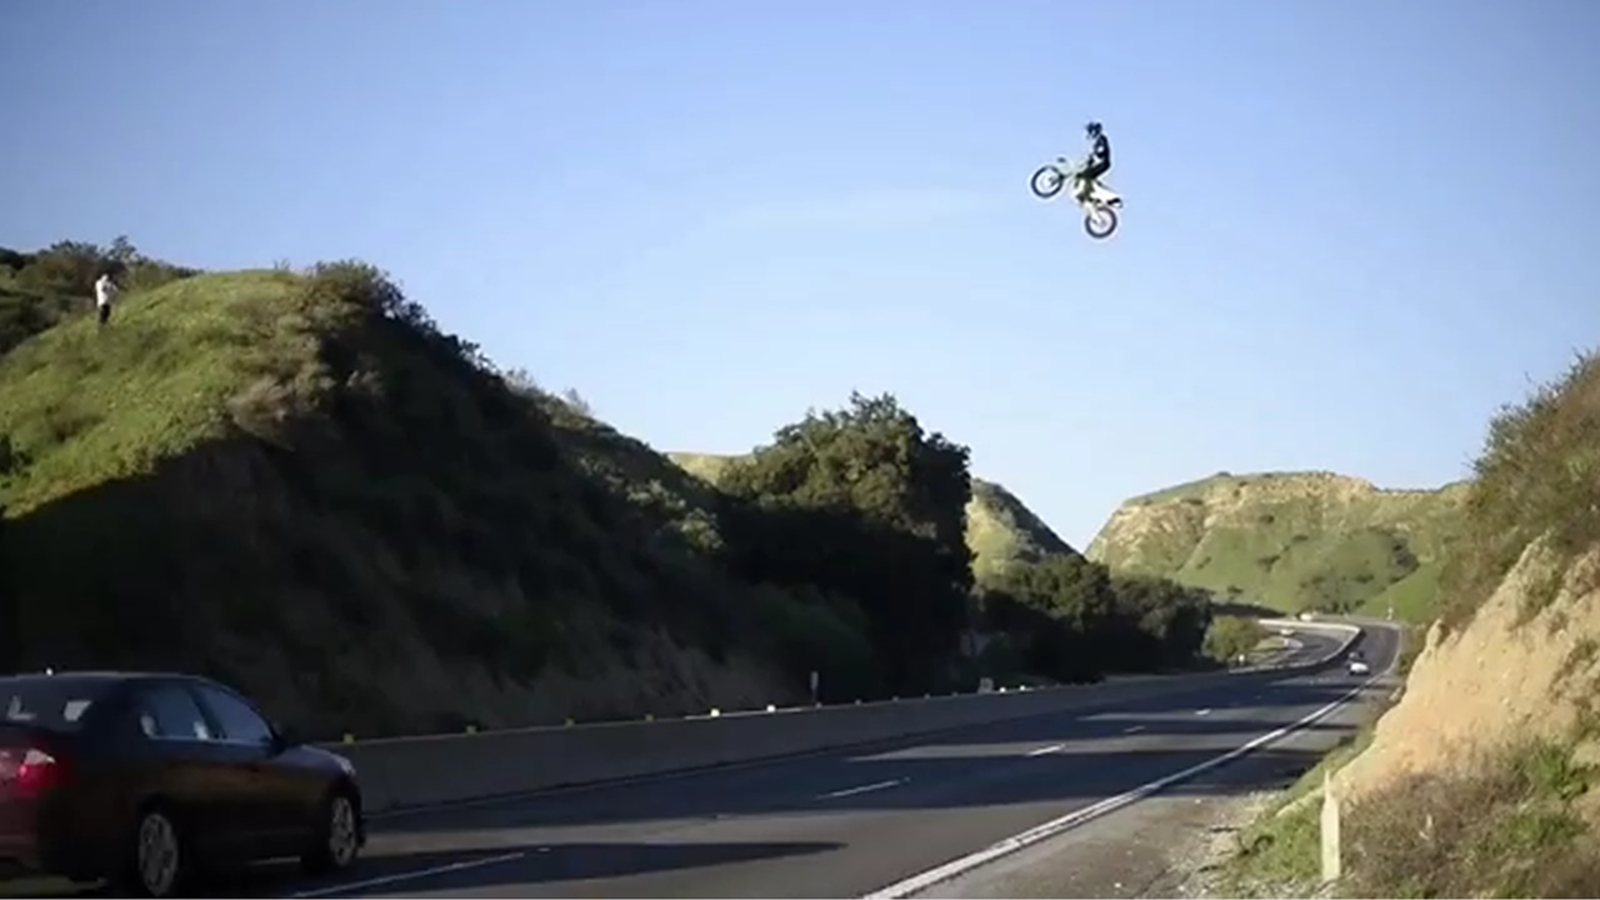 Motorcyclist jumps over SoCal freeway, sparks investigation